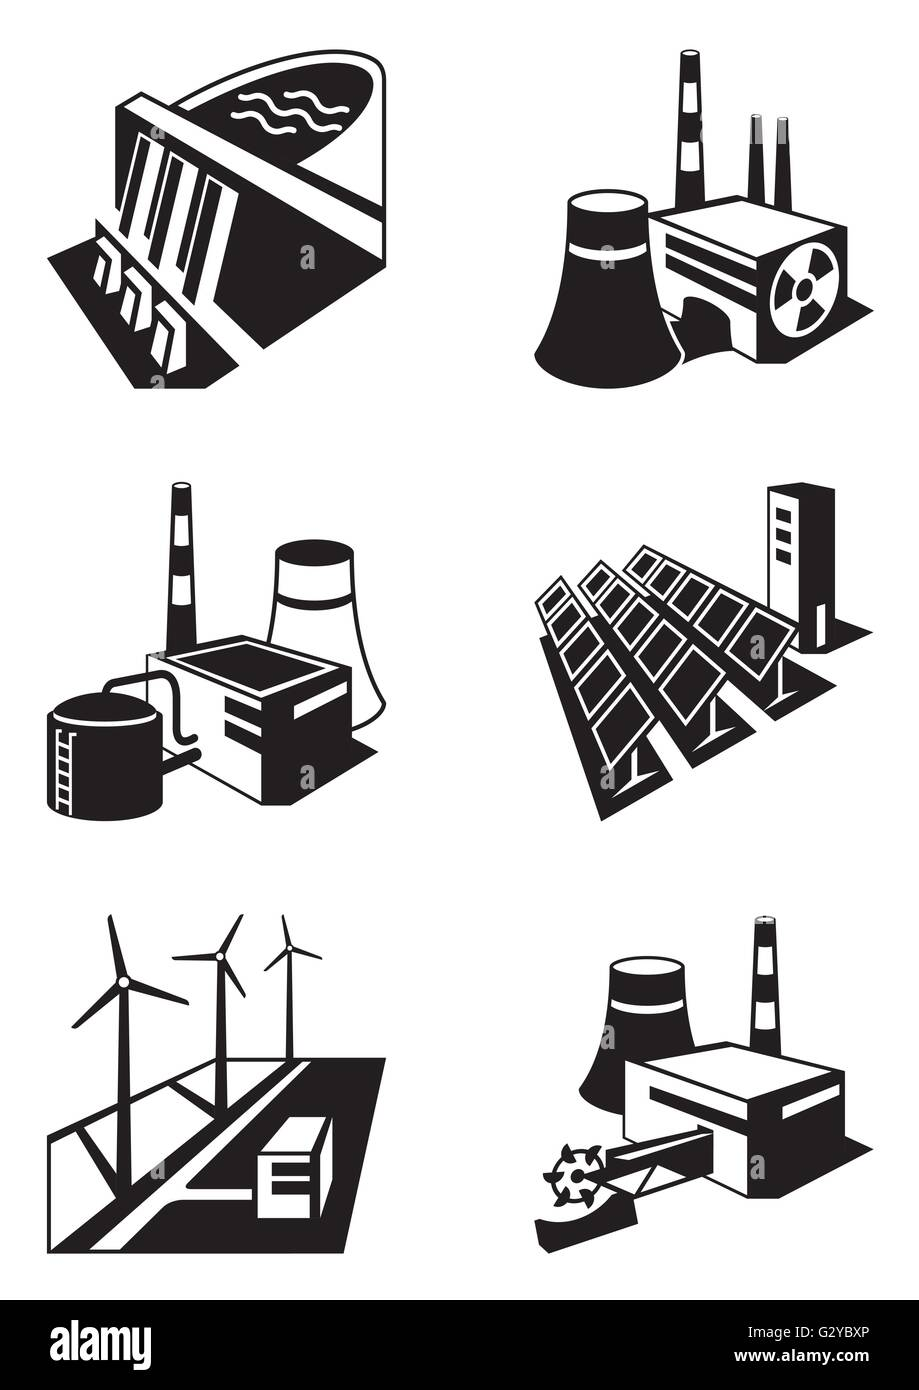 Different power plants - vector illustration - Stock Image